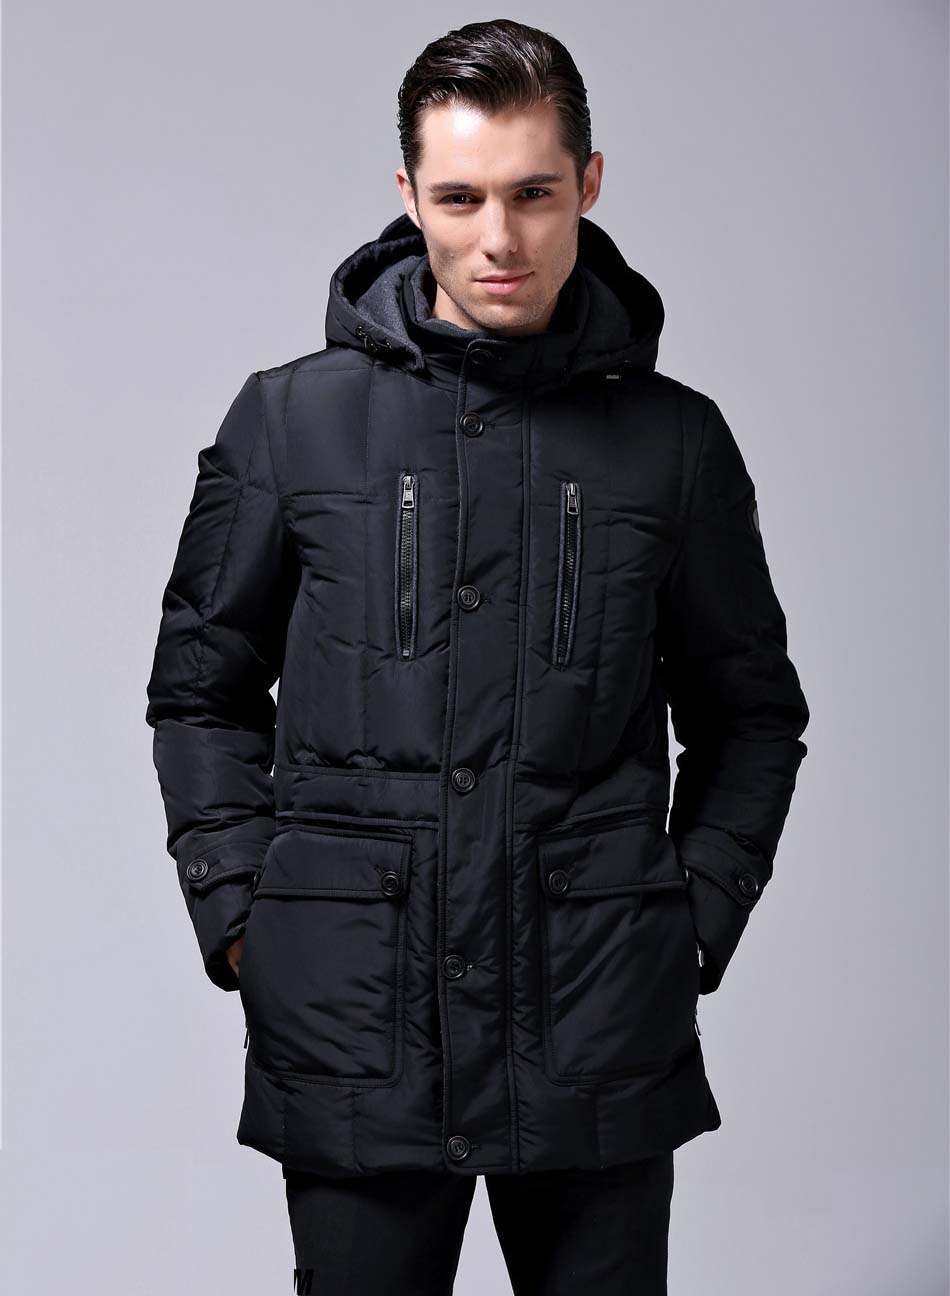 2017 new business gentleman duck down coat casual male jacket medium-long thickening with a hood black plus big size 2xl 3xl xxl